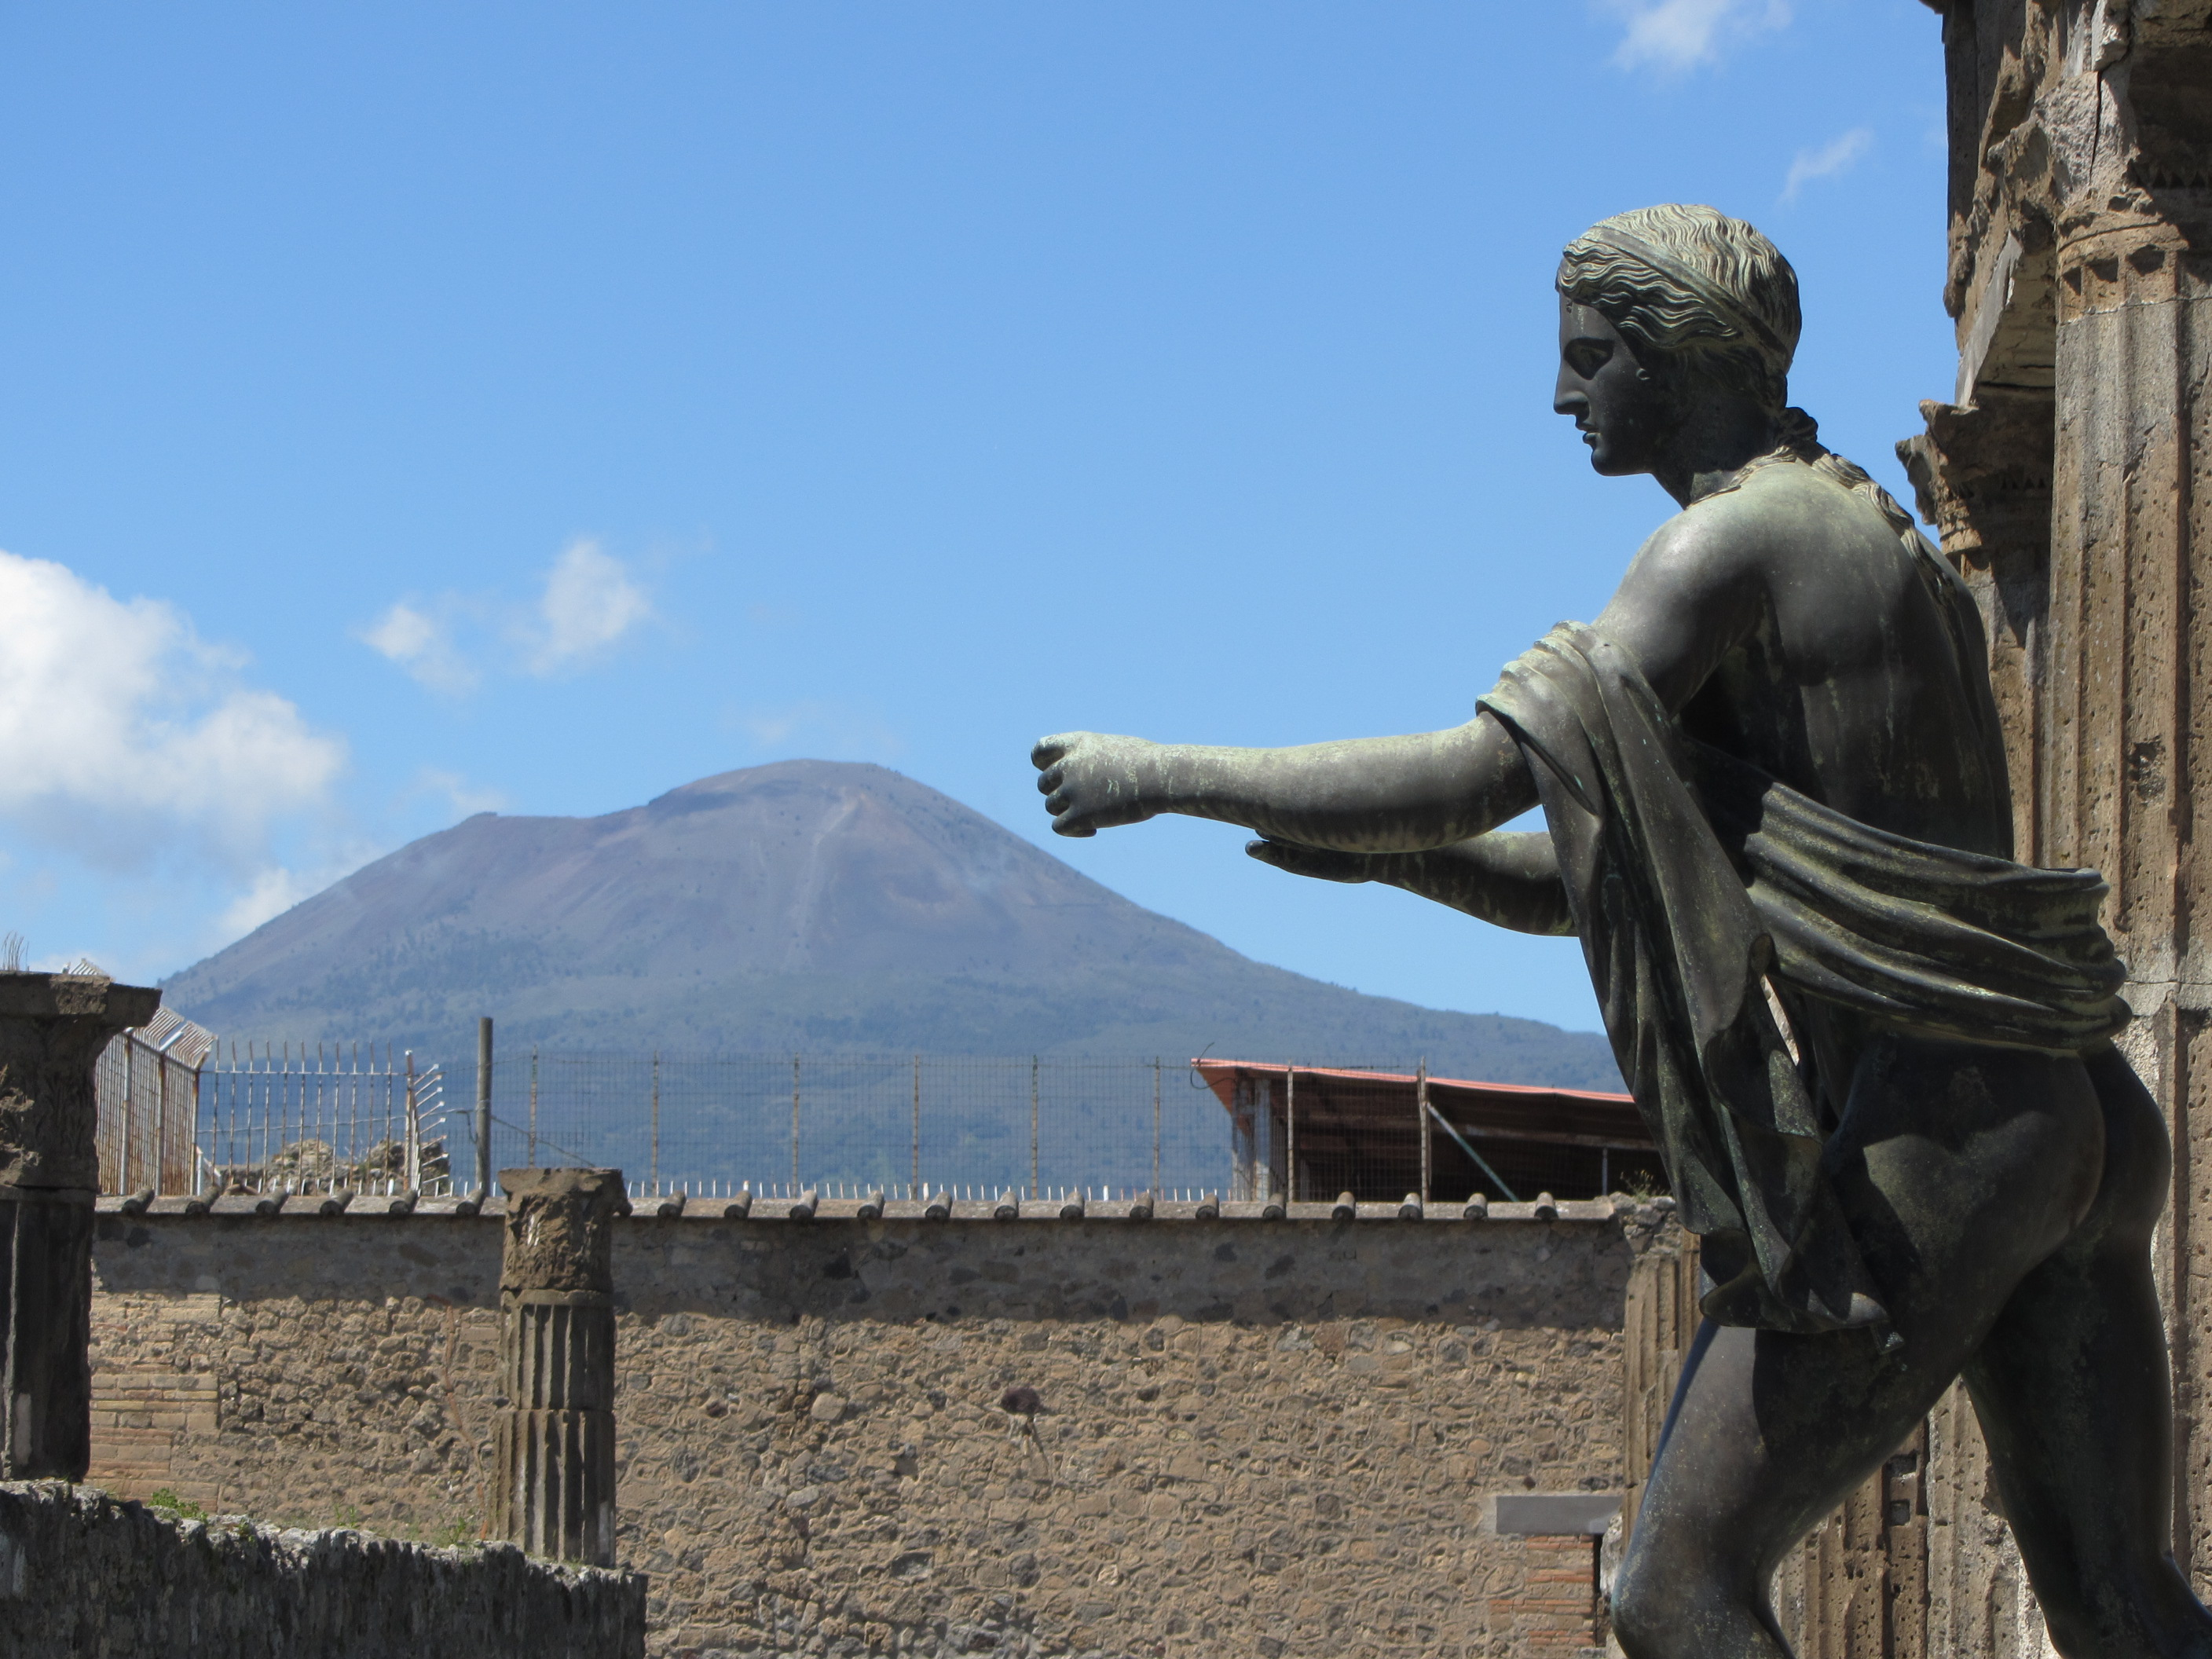 mt vesuvius essay Eruption of pompeii timeline - how volcanoes cause damage essay pompeii where mount vesuvius erupted mount vesuvius is considered to be one of the most dangerous volcanoes.